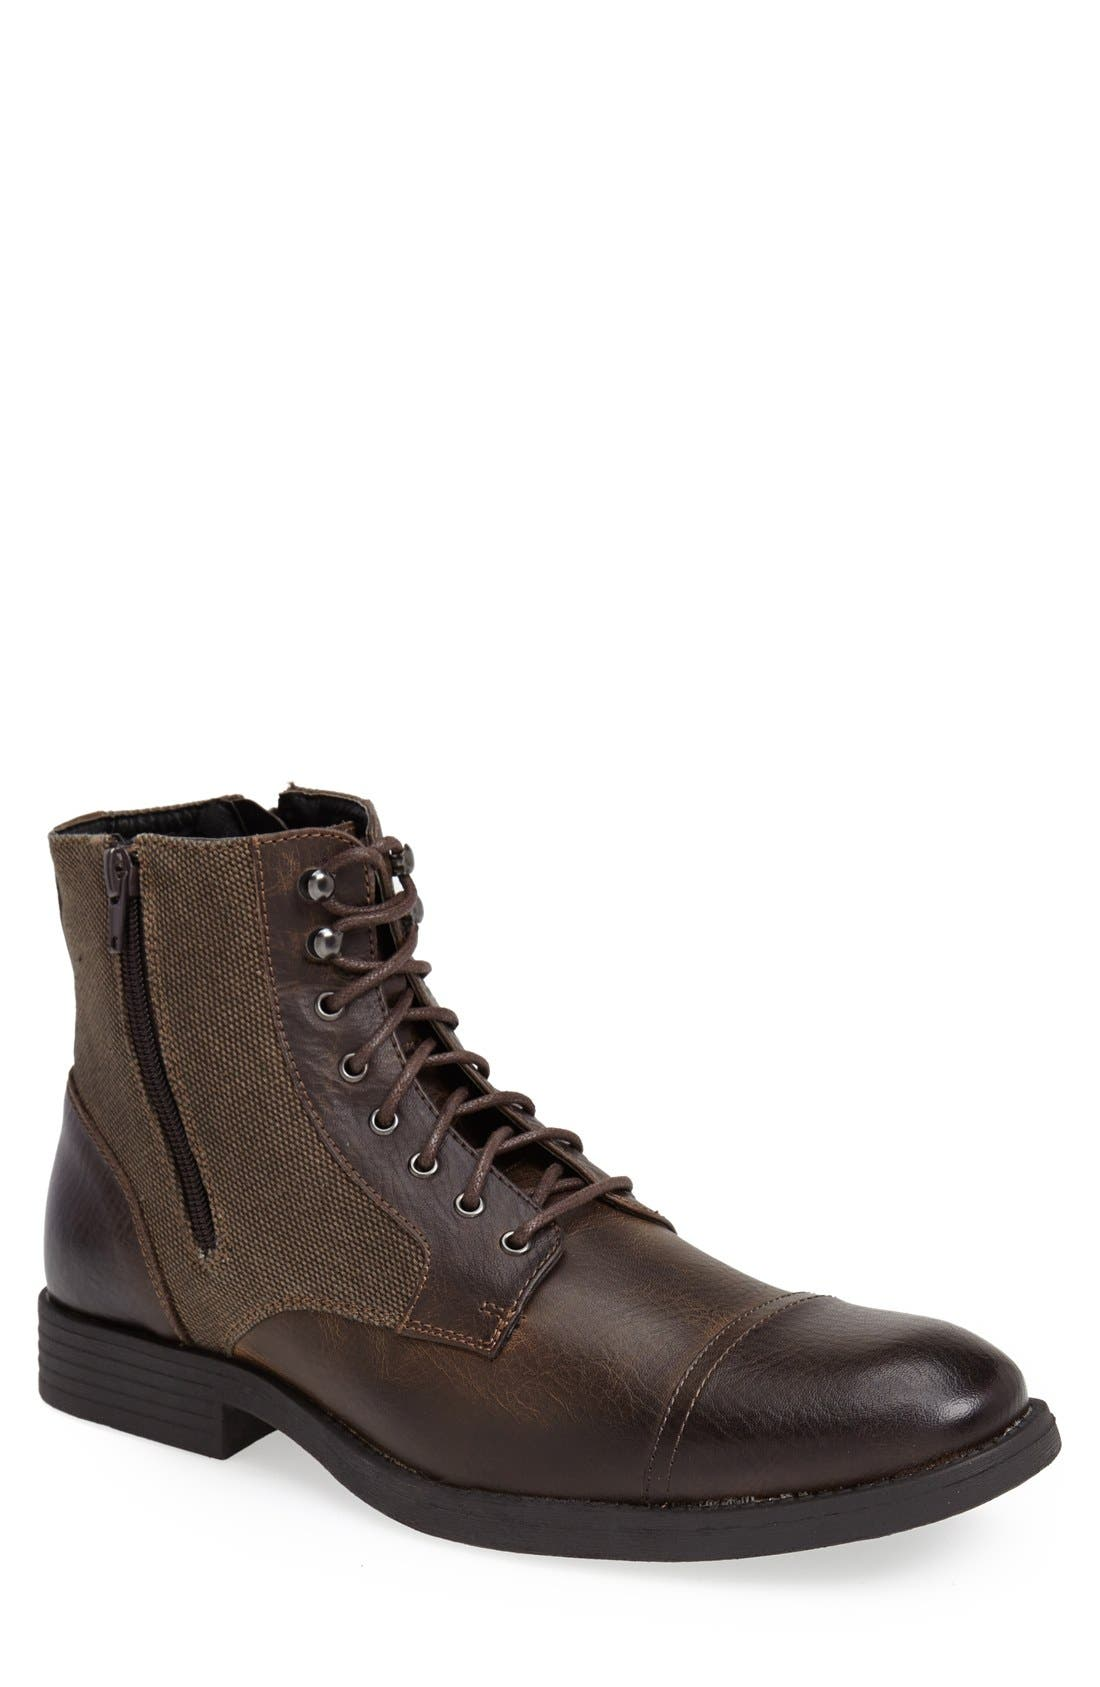 'Edgar' Cap Toe Boot,                             Main thumbnail 1, color,                             201